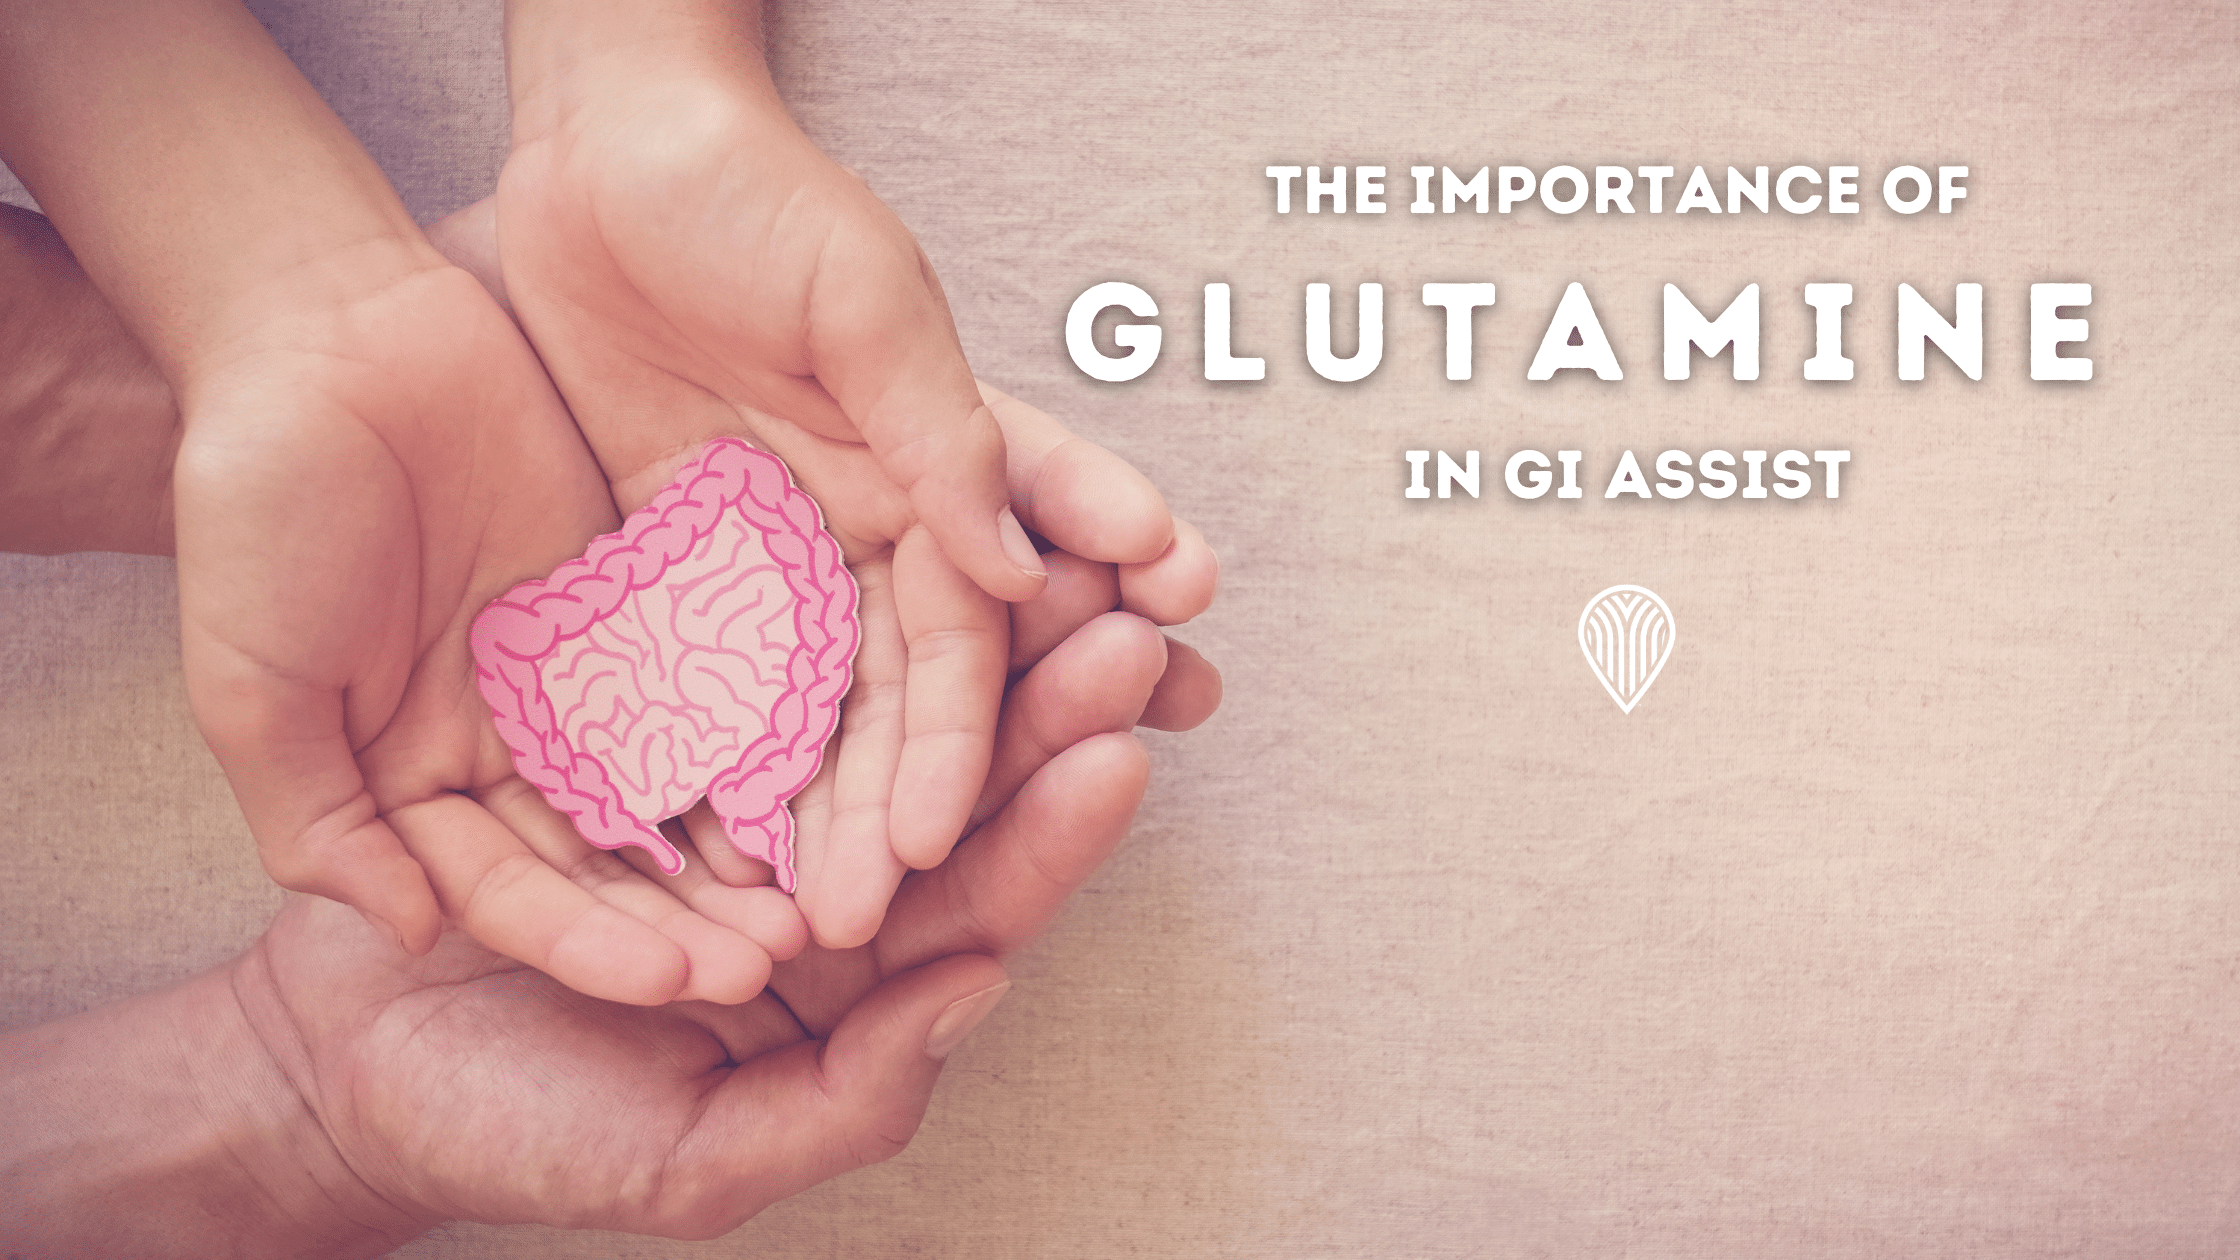 The importance of glutamine in GI Assist